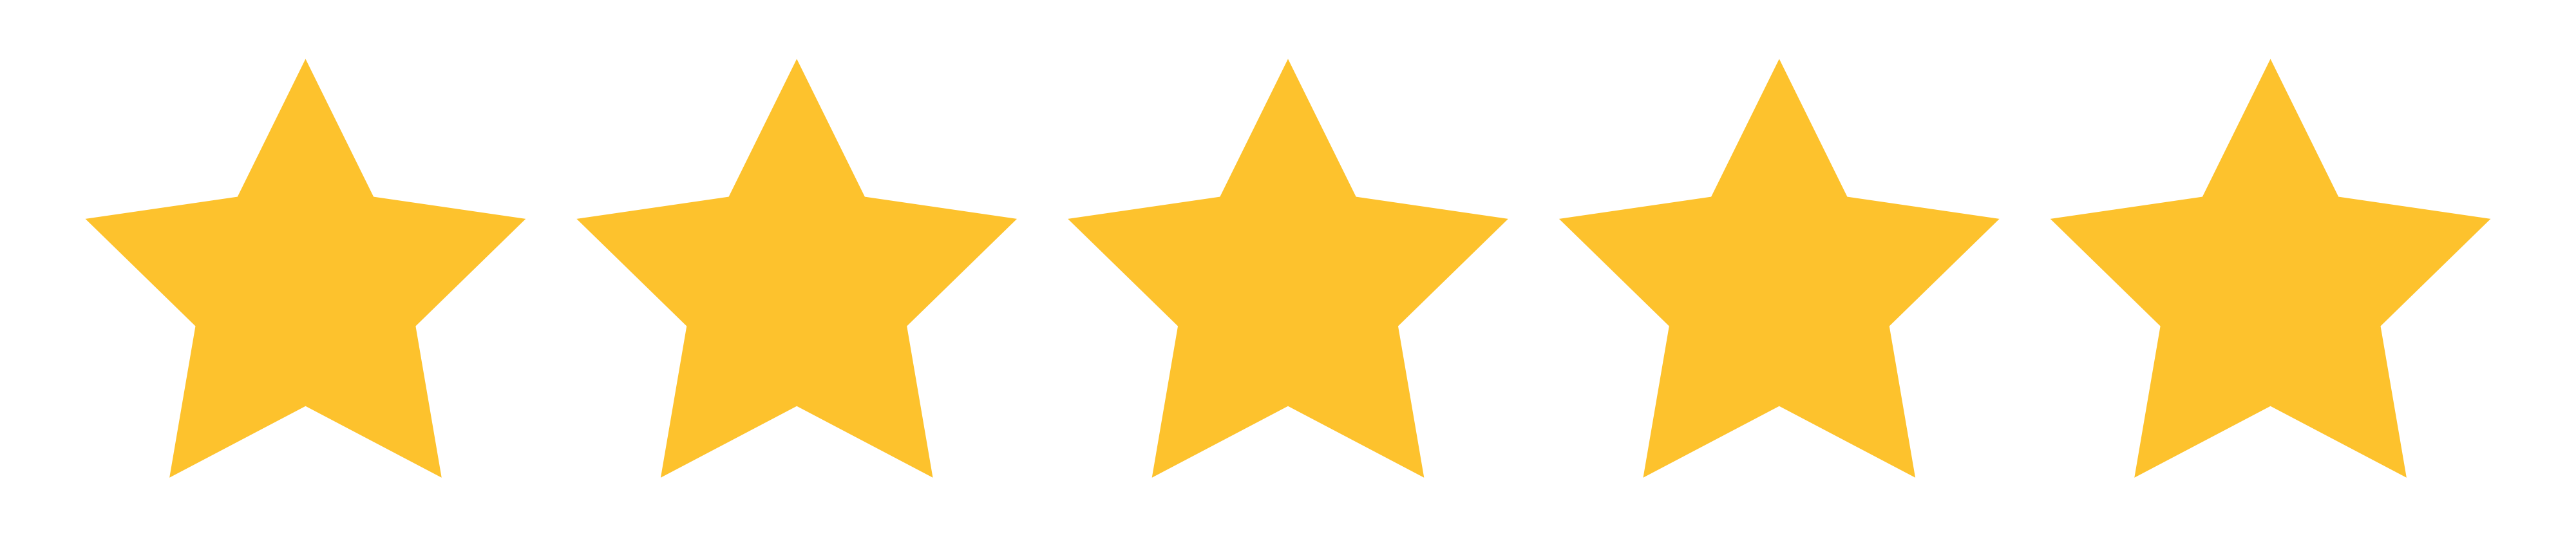 5 stars png. Index of wp content